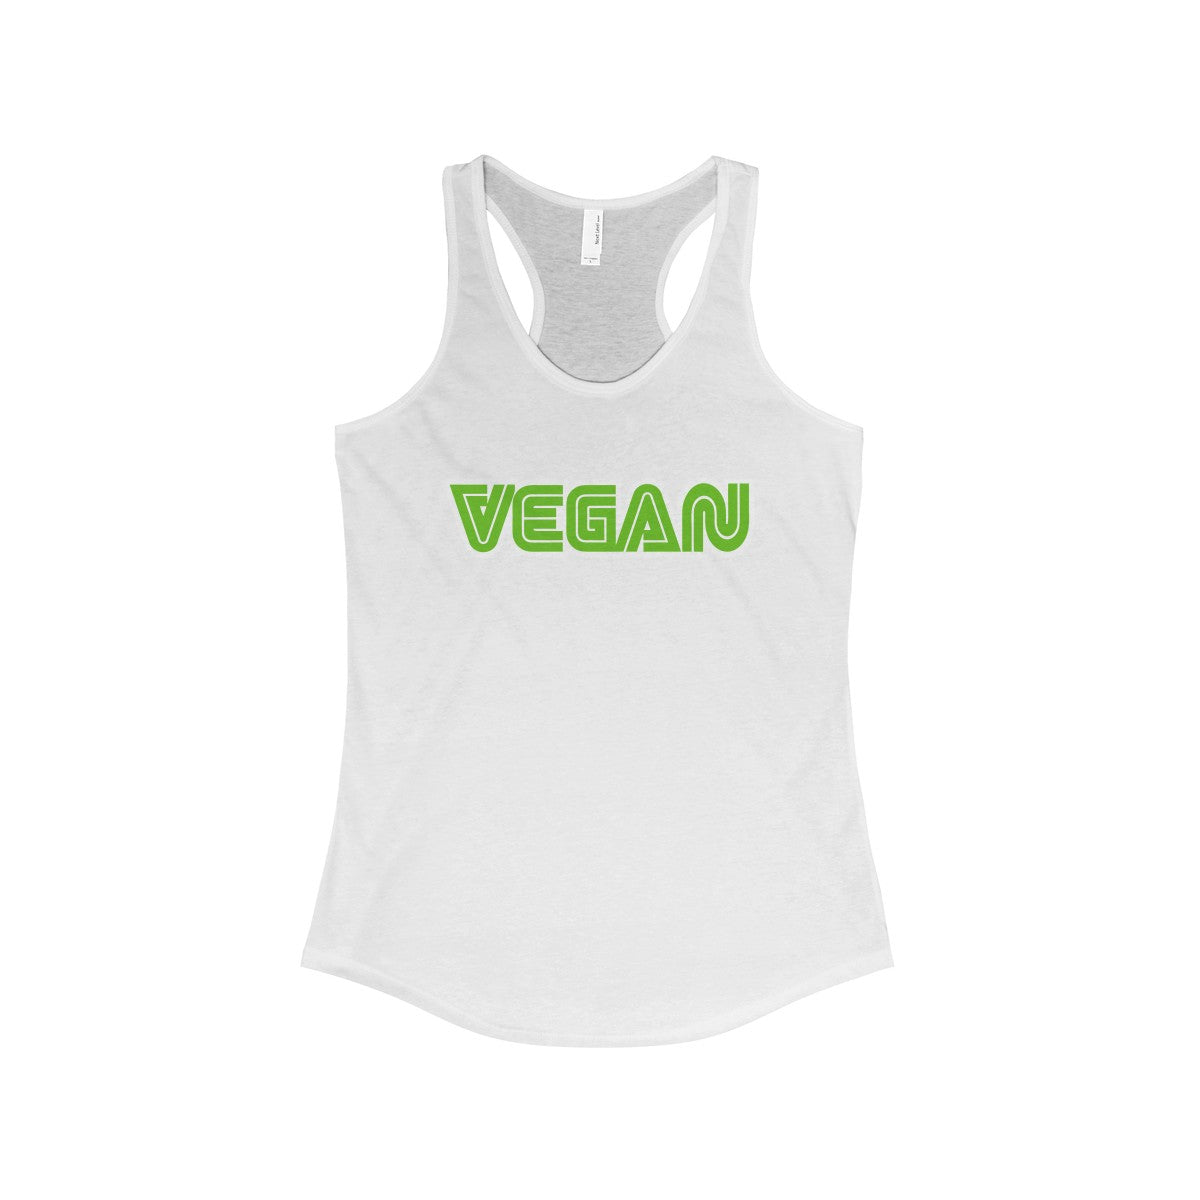 Vegan Sega Style Women's Ideal Racerback Tank - DaVatka Fashion